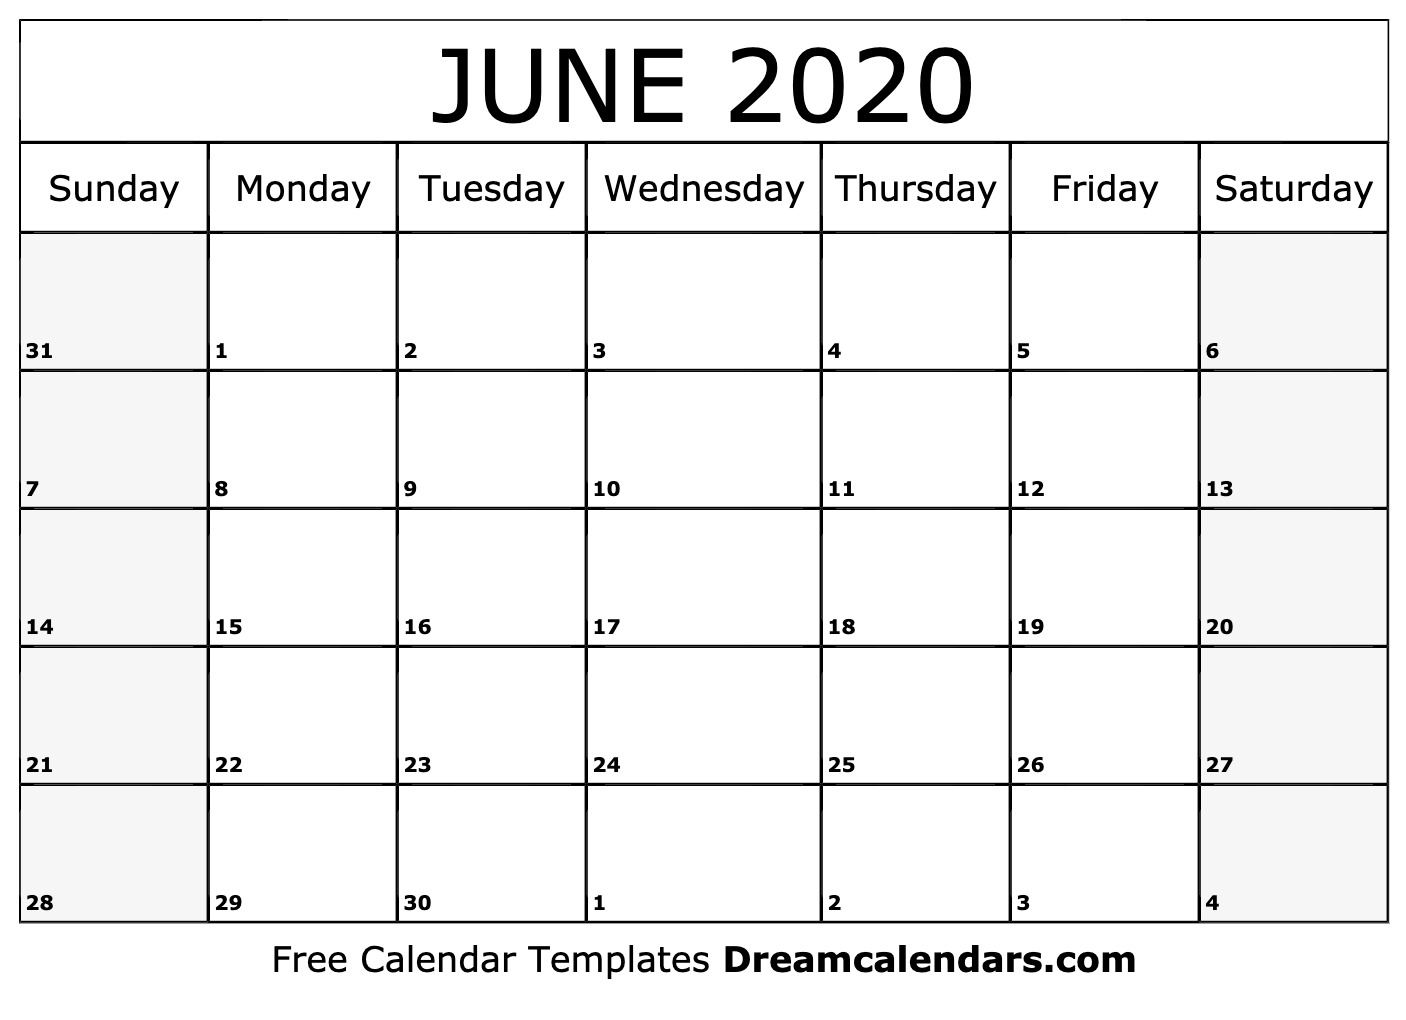 June 2019 To June 2020 Calendar Printable.Printable June 2020 Calendar